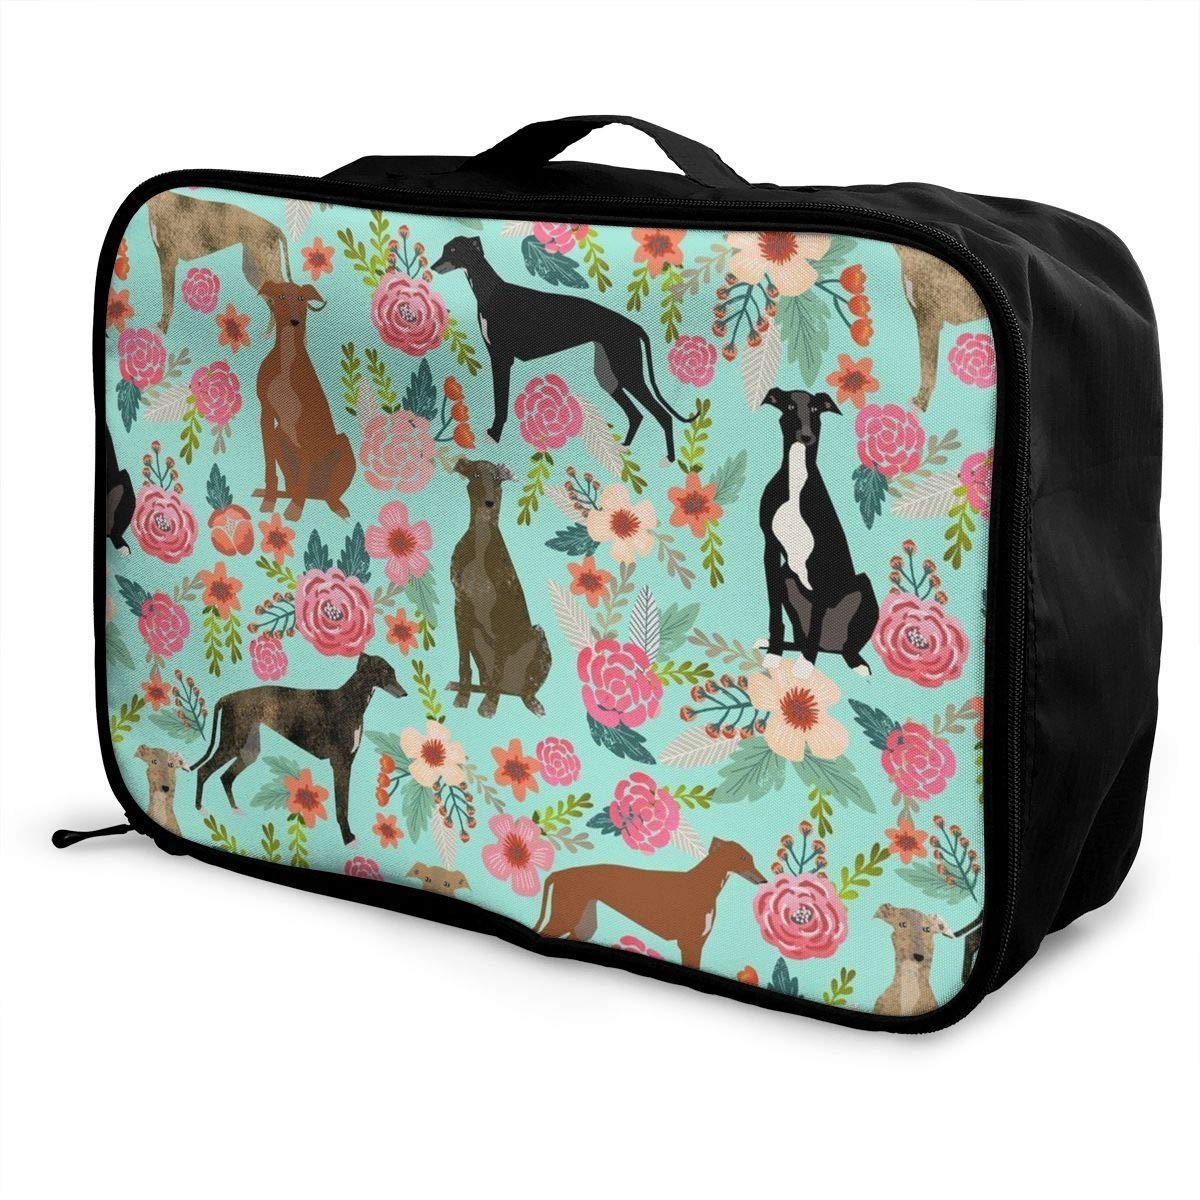 Travel Lightweight Waterproof Foldable Storage Carry Luggage Duffle Tote Bag Greyhound Floral Cute Dog Mint Vintage JTRVW Luggage Bags for Travel